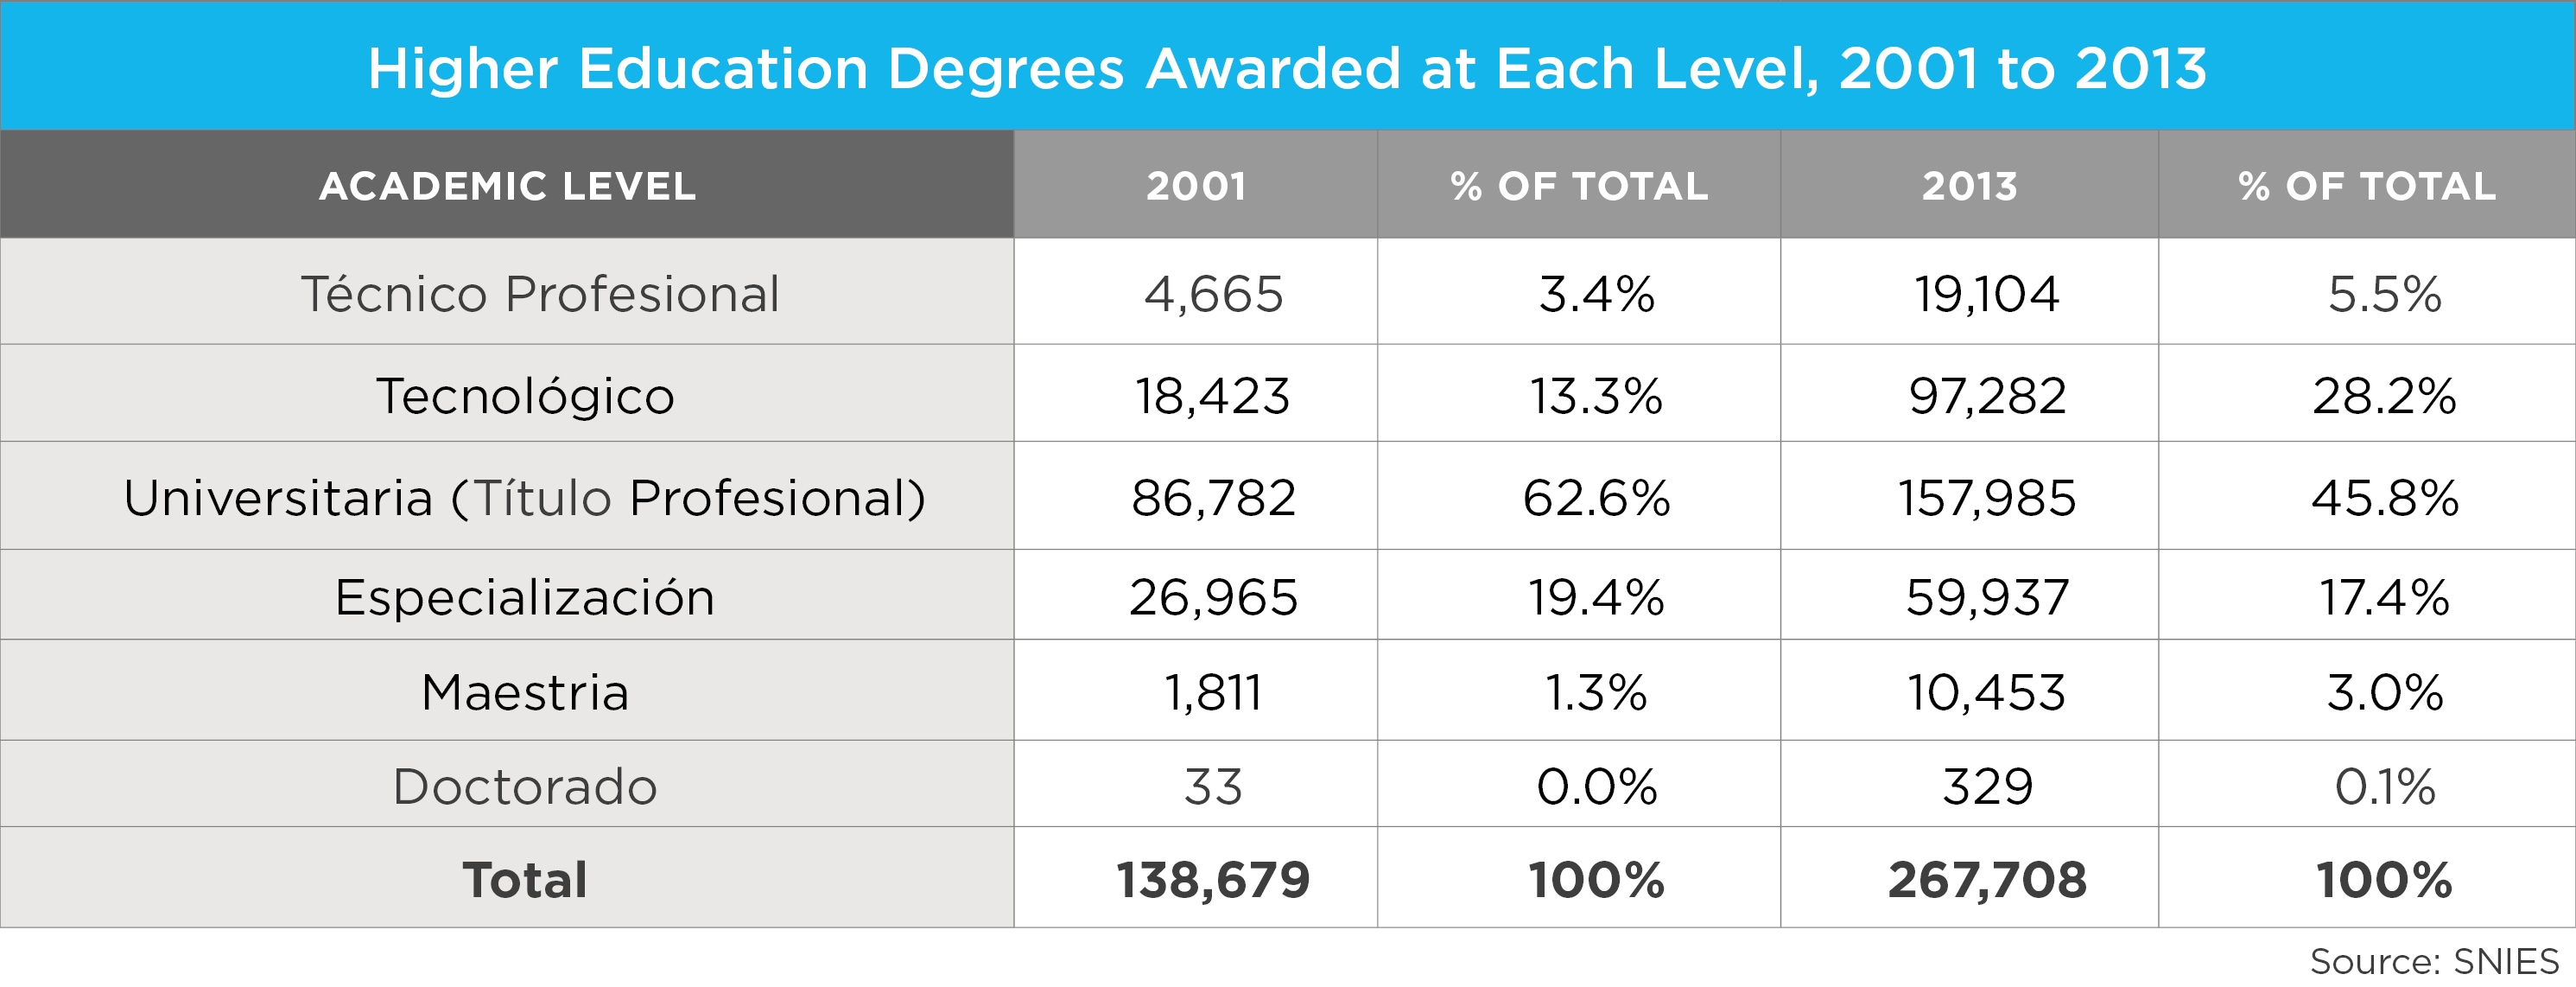 education in wenr higher education degrees awarded level 2001 2013